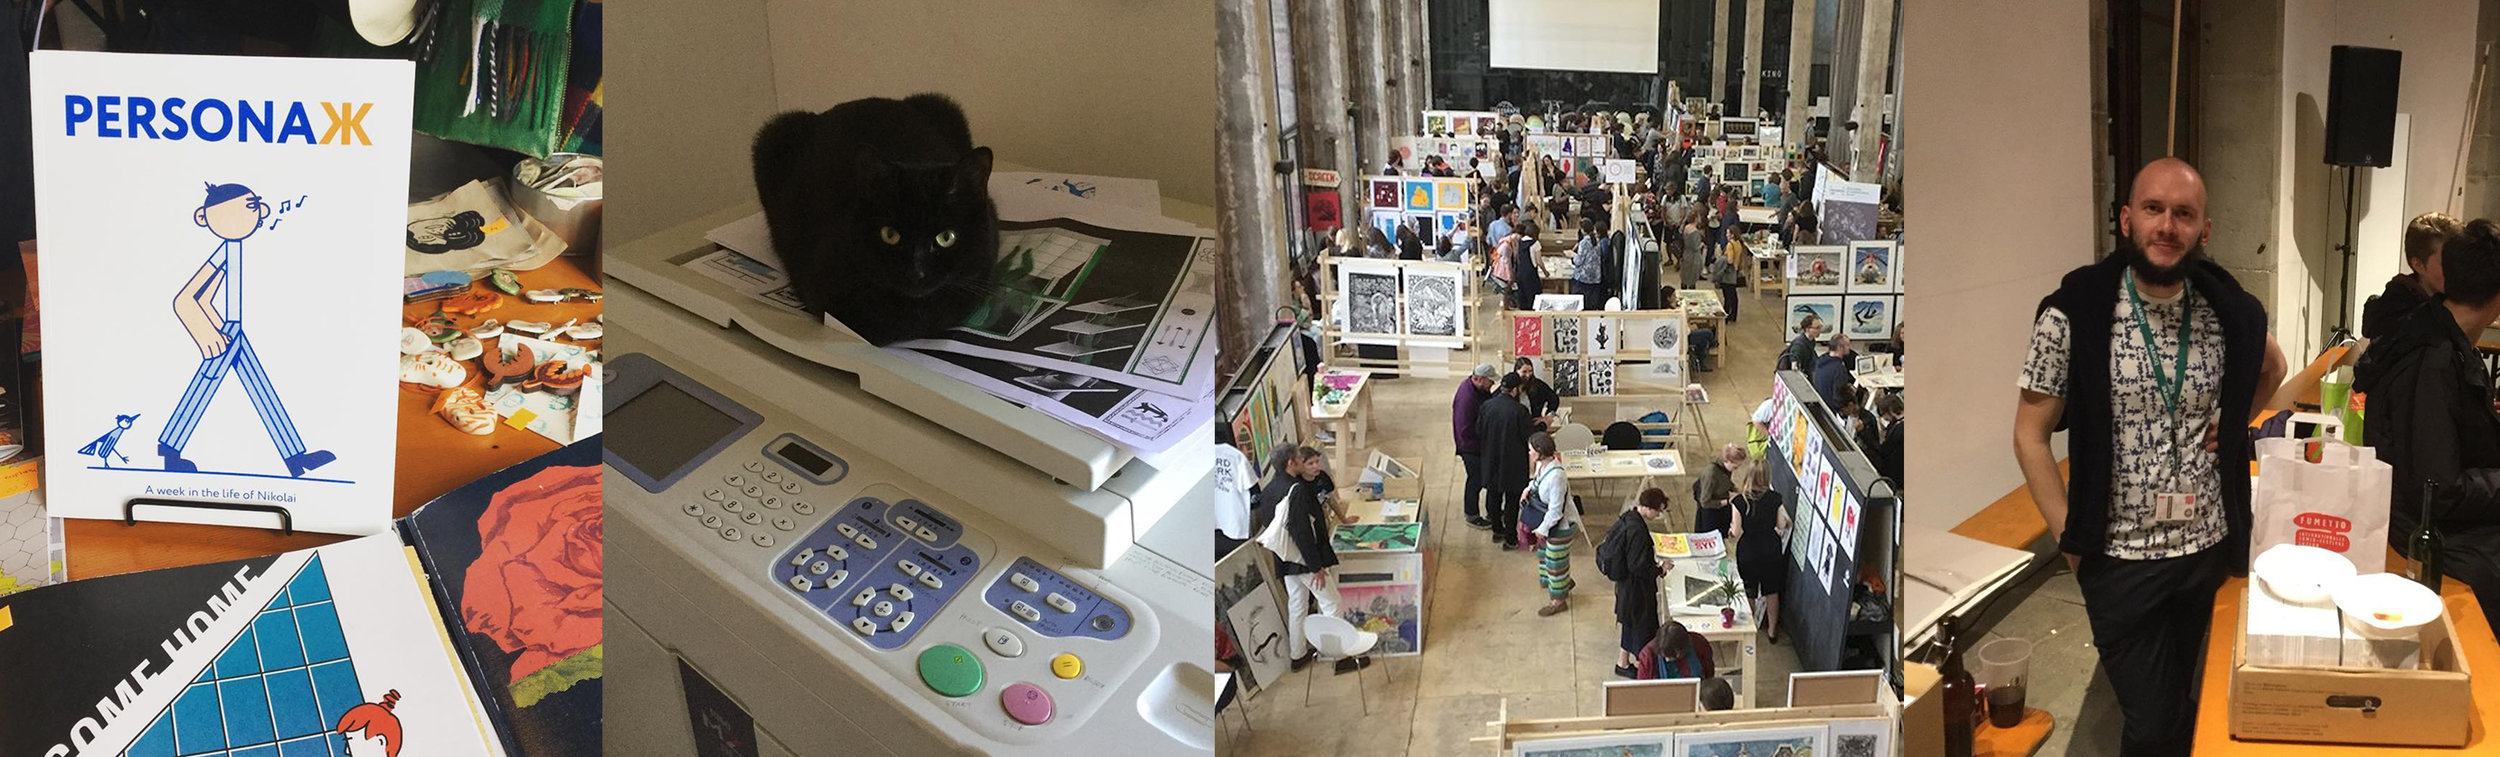 Out and about... from left to right, PersonaЖ on display, Sputnik the Cat sitting on her Risograph throne, Vkus Bumagi print fair in Moscow and Andrey taking it easy after a busy day at Fumetto.